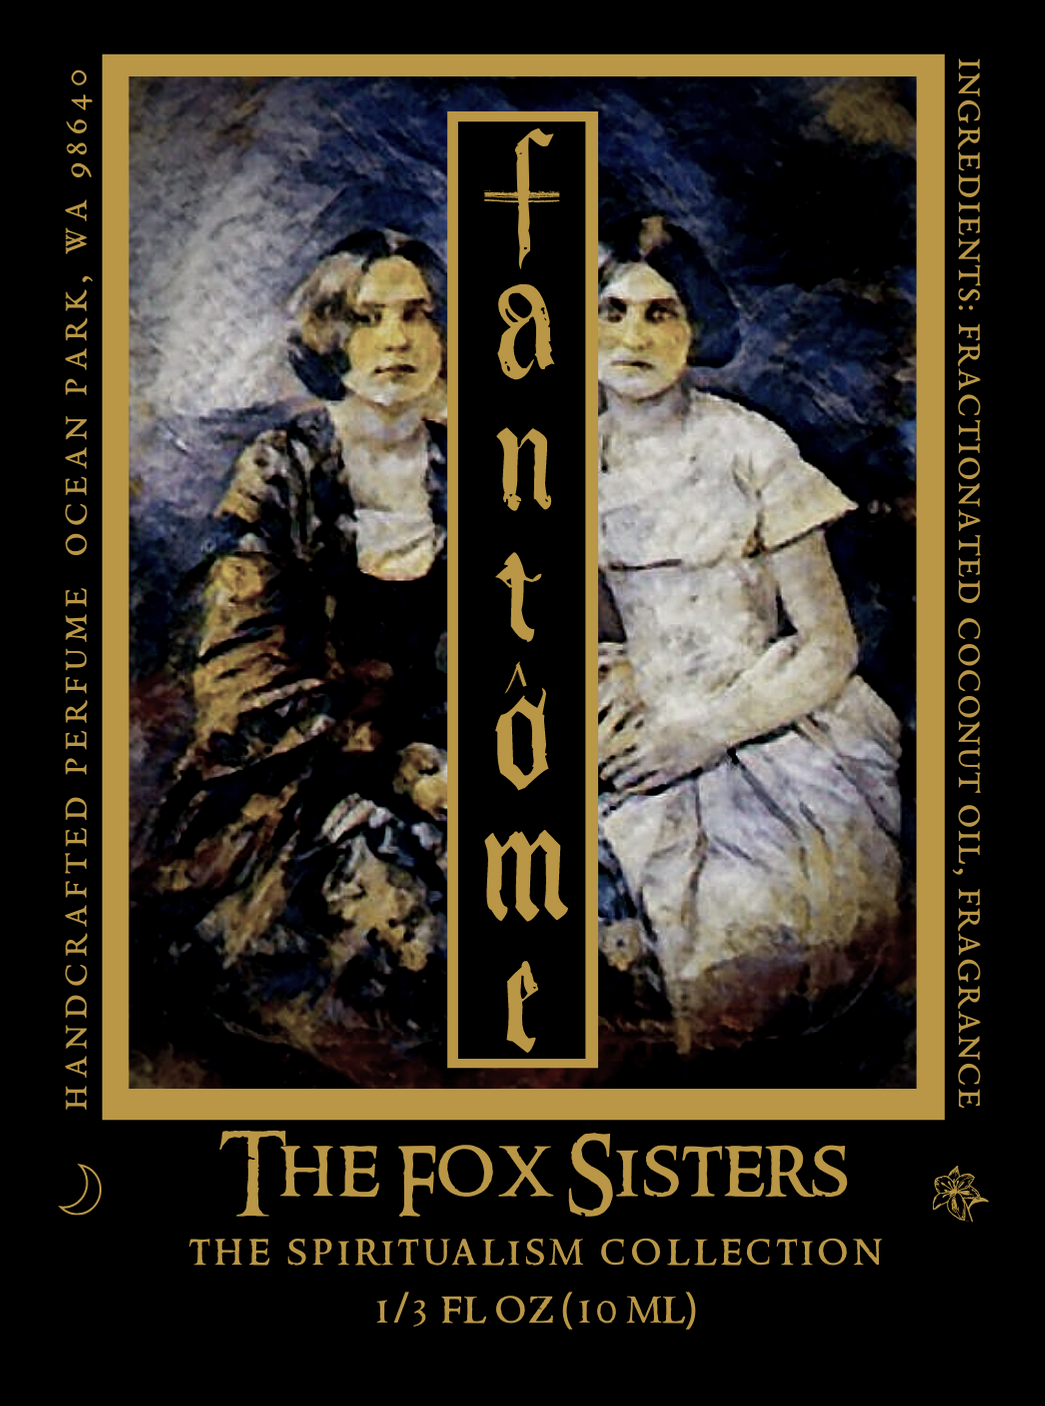 The Fox Sisters